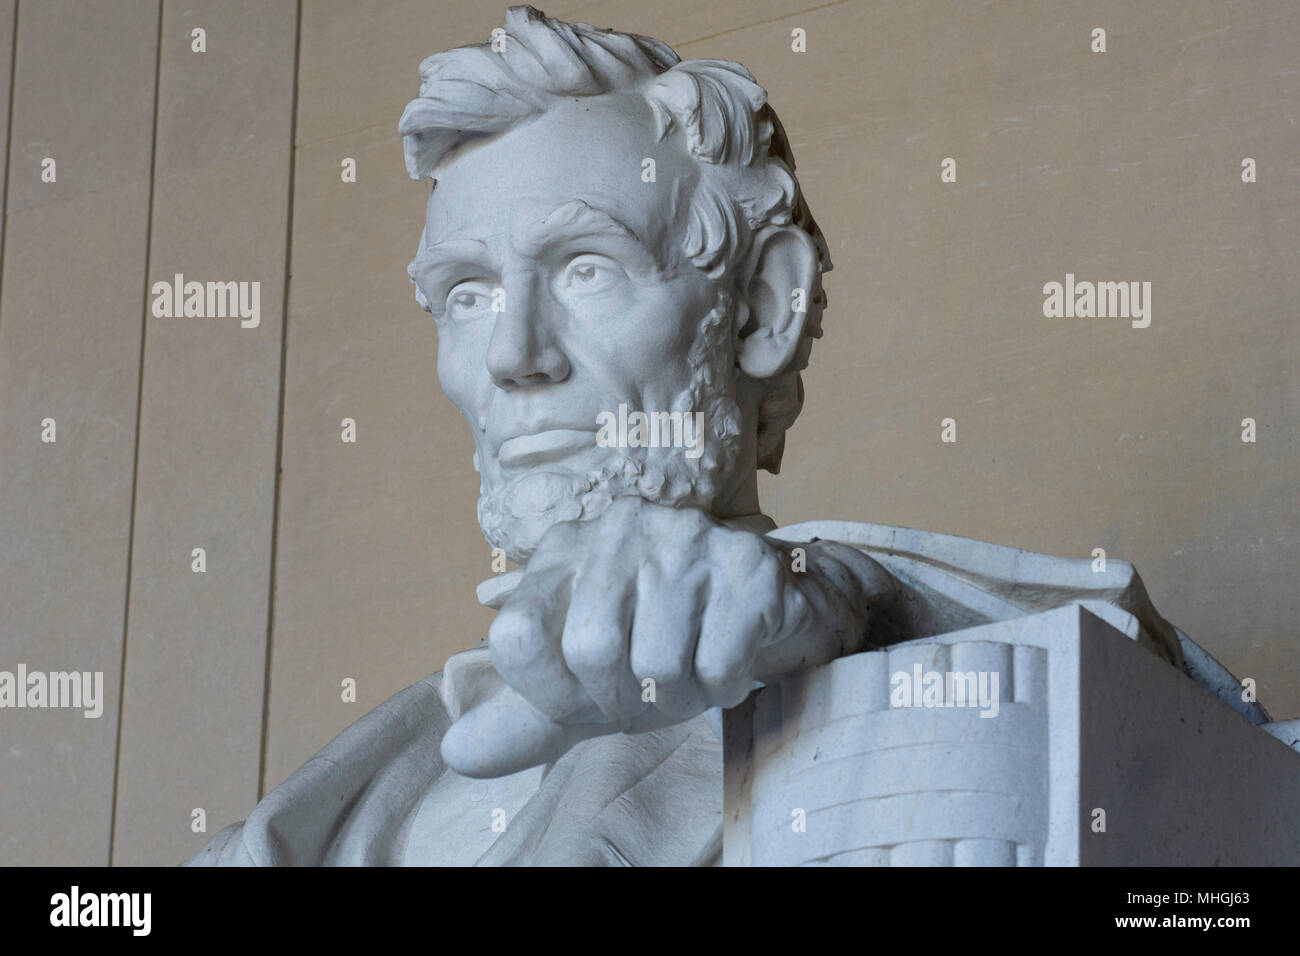 Close up 3/4 Ansicht Der iconnic Skulptur von Abraham Lincoln von Bildhauer Daniel Chester French, am Lincoln Memorial in Washington, DC. Stockbild